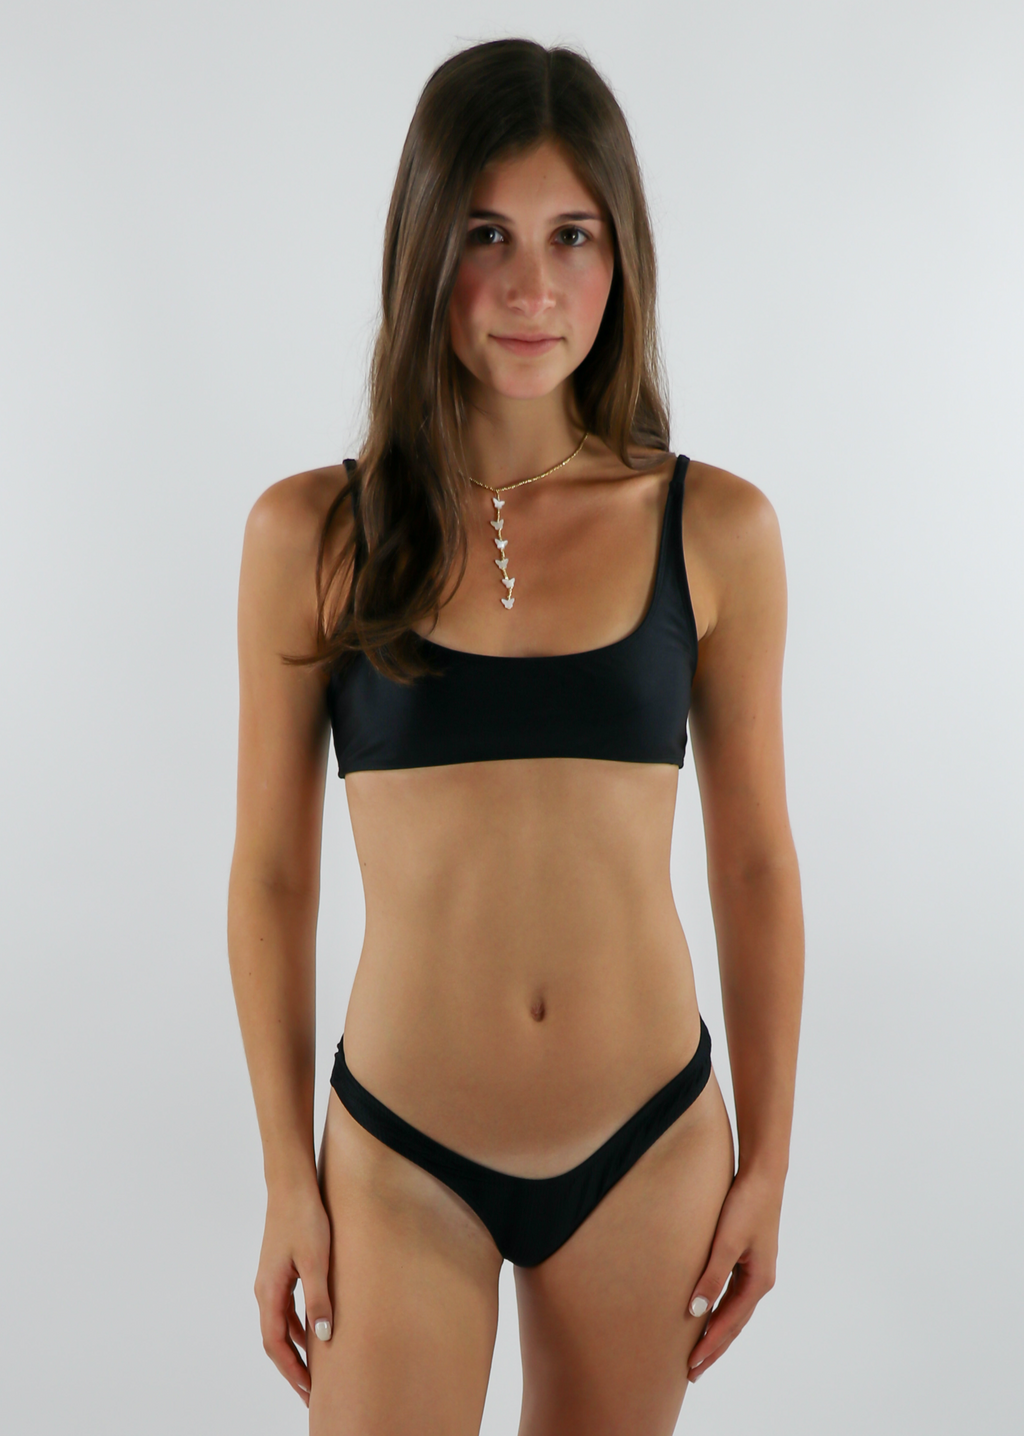 Dani California Bikini Top ★ Black - Rock N Rags